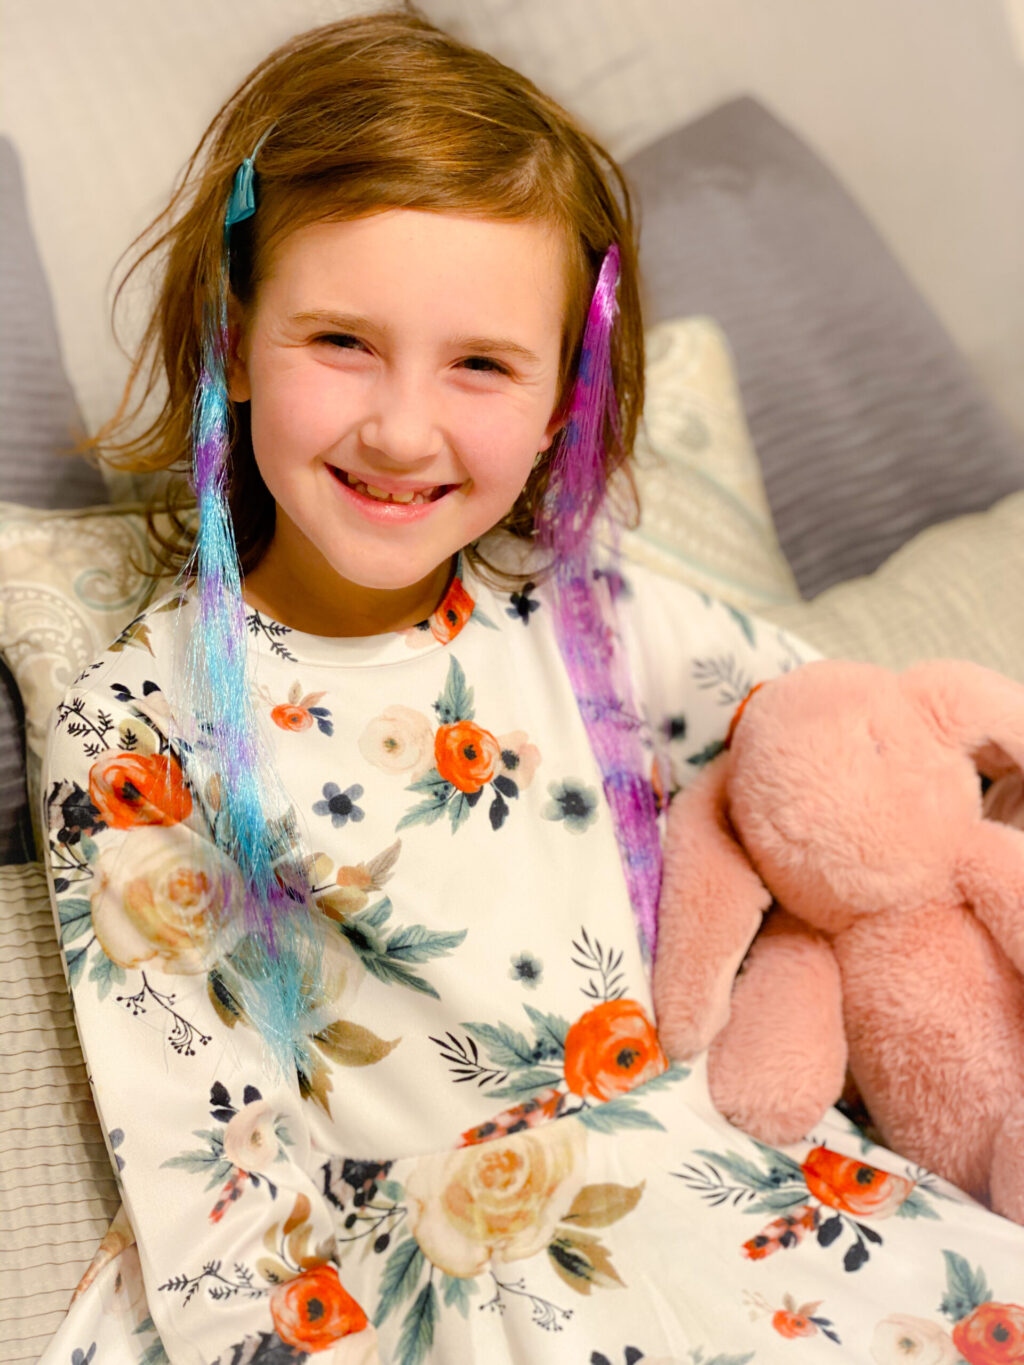 little girl in white floral dress wearing turquoise and purple hair extensions holding pink plush rabbit